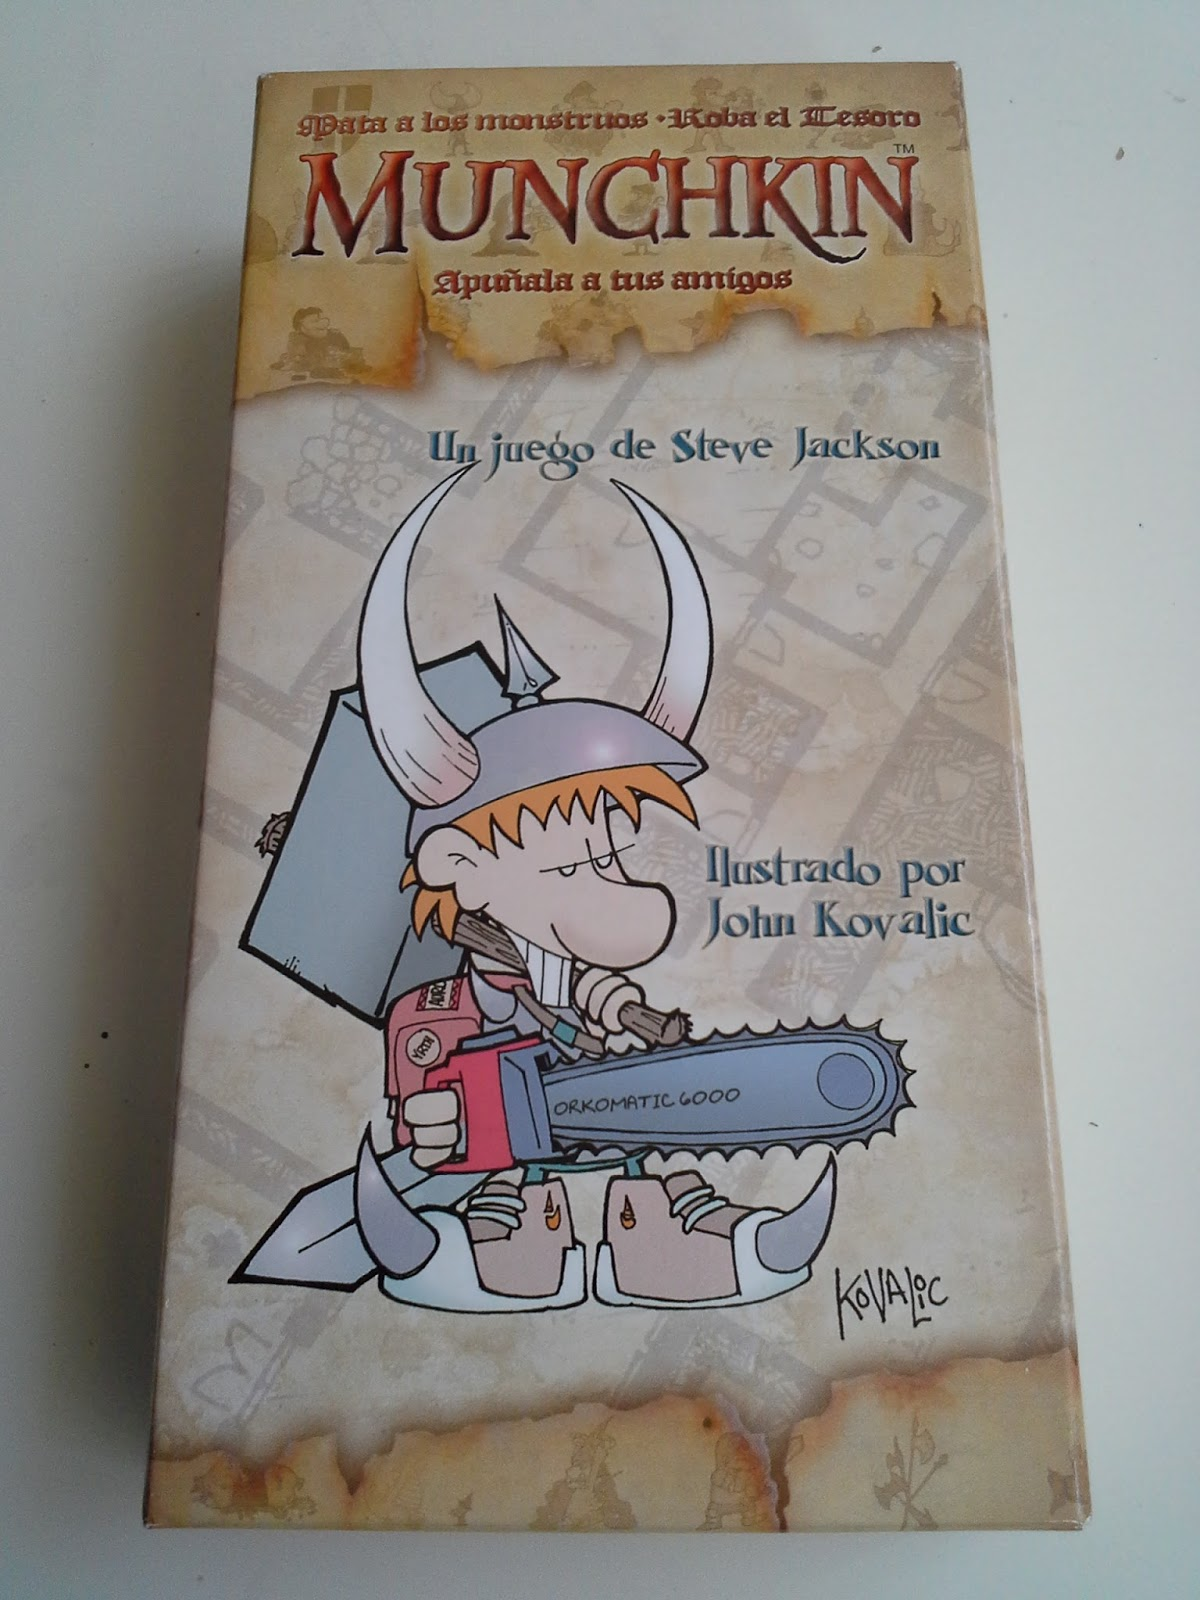 Famous Munchkin Manual Adornment - Wiring Diagram Ideas - guapodugh.com